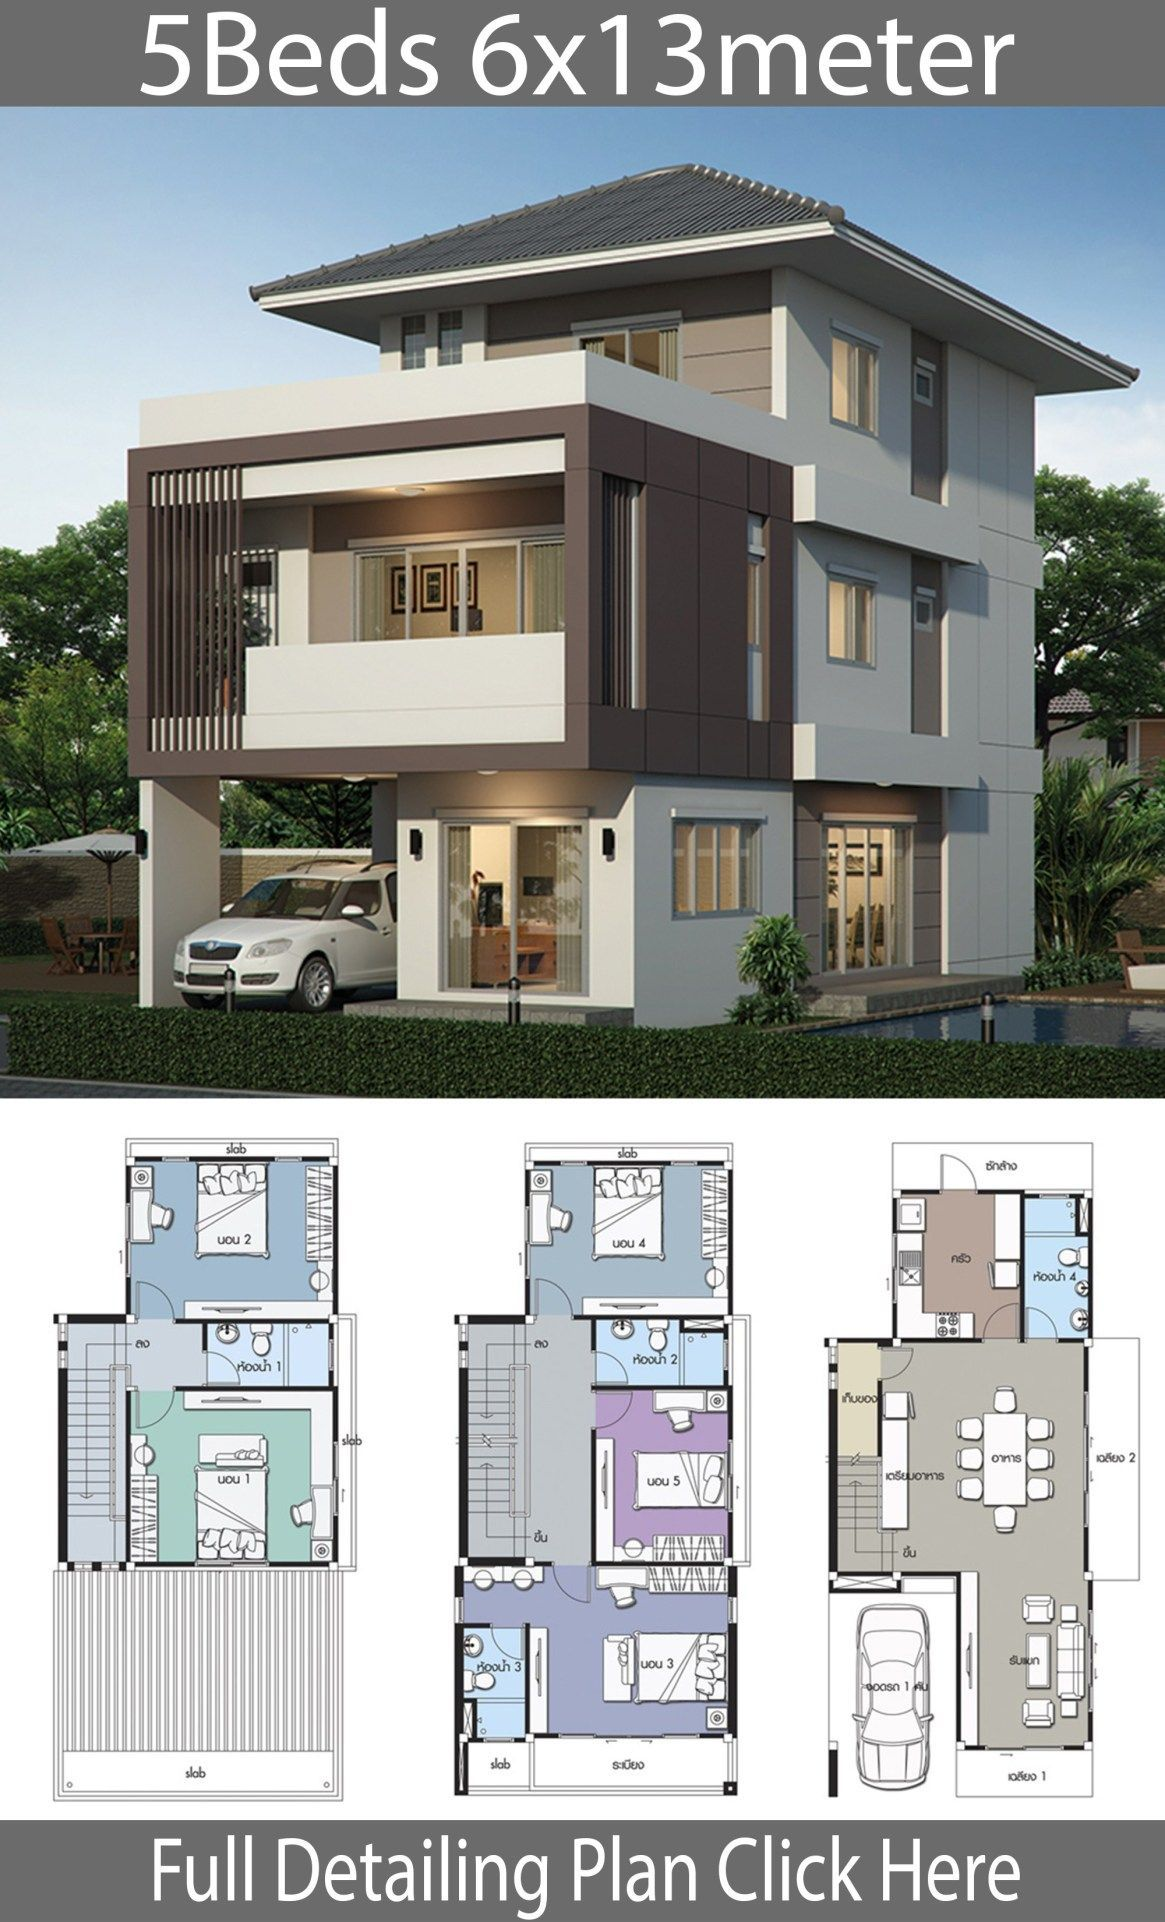 Home Design Plan 6x13m With 5 Bedrooms Home Design With Plansearch Livingroom Homedecorideas Duplex House Design Bungalow House Design Home Building Design